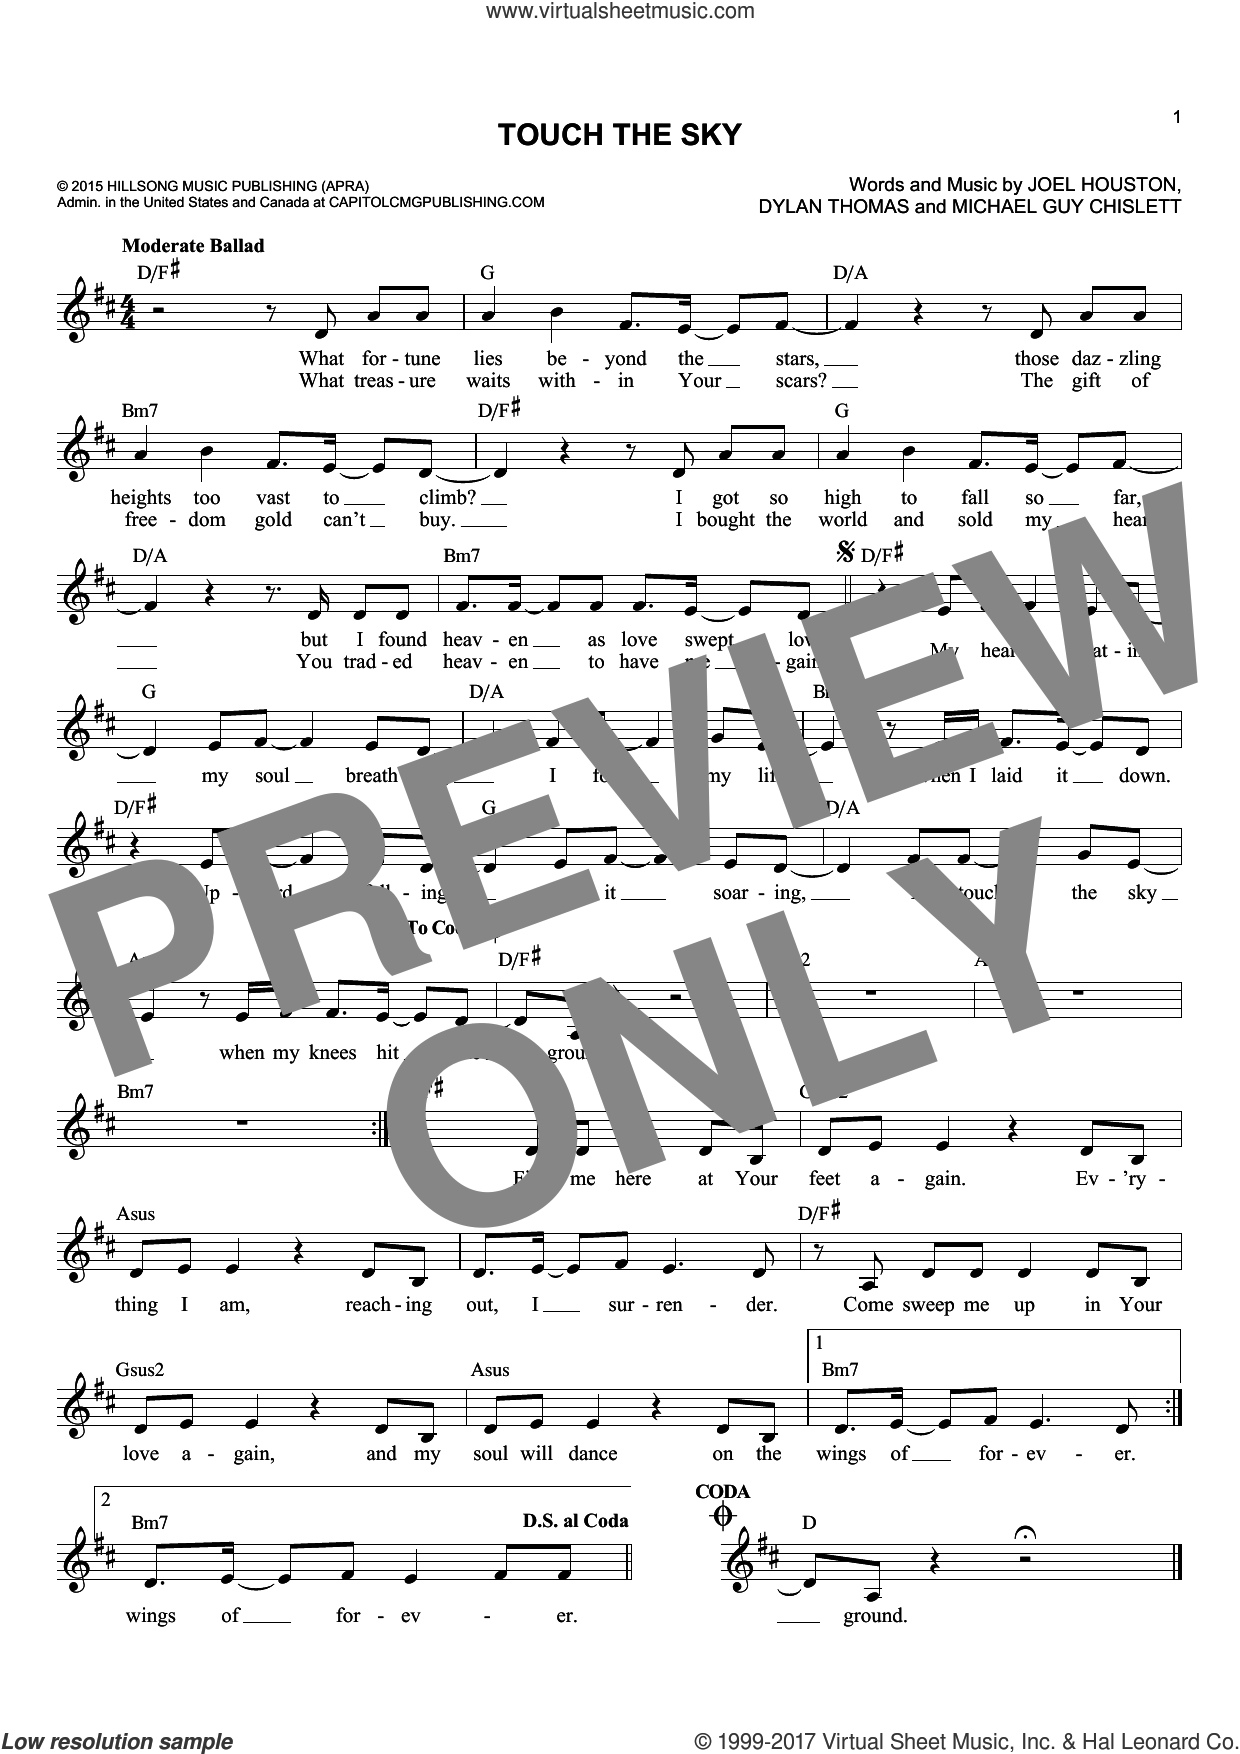 Touch The Sky sheet music for voice and other instruments (fake book) by Hillsong United, Dylan Thomas, Joel Houston and Michael Guy Chislett, intermediate skill level